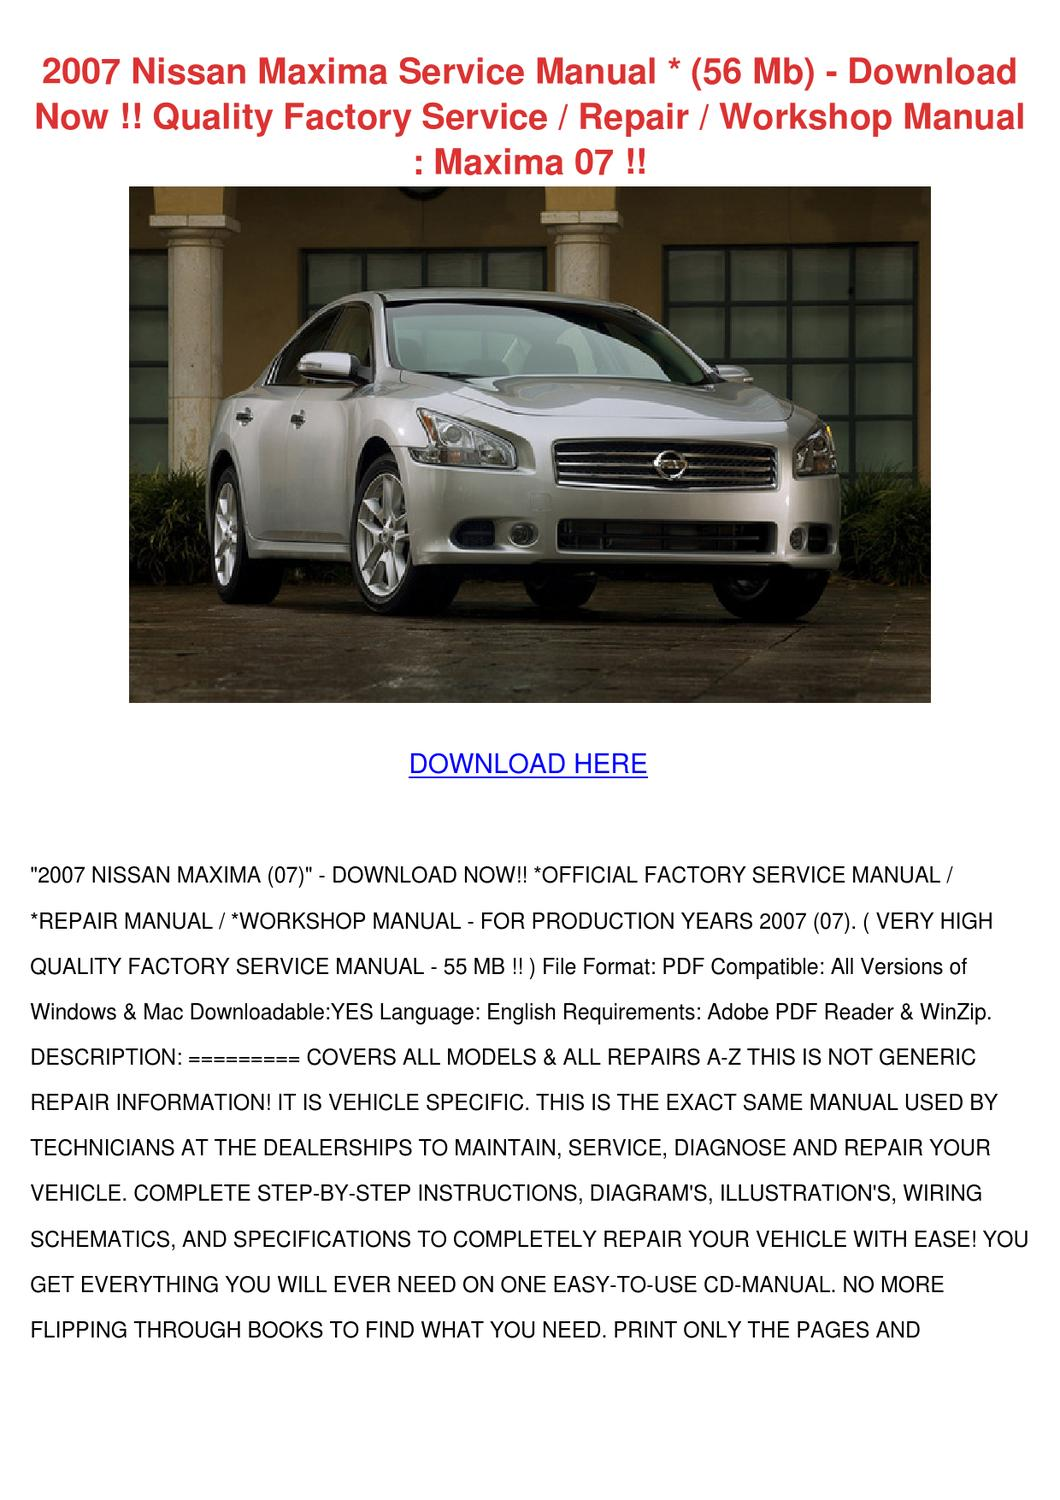 2007 Nissan Maxima Service Manual 56 Mb Downl By Toby